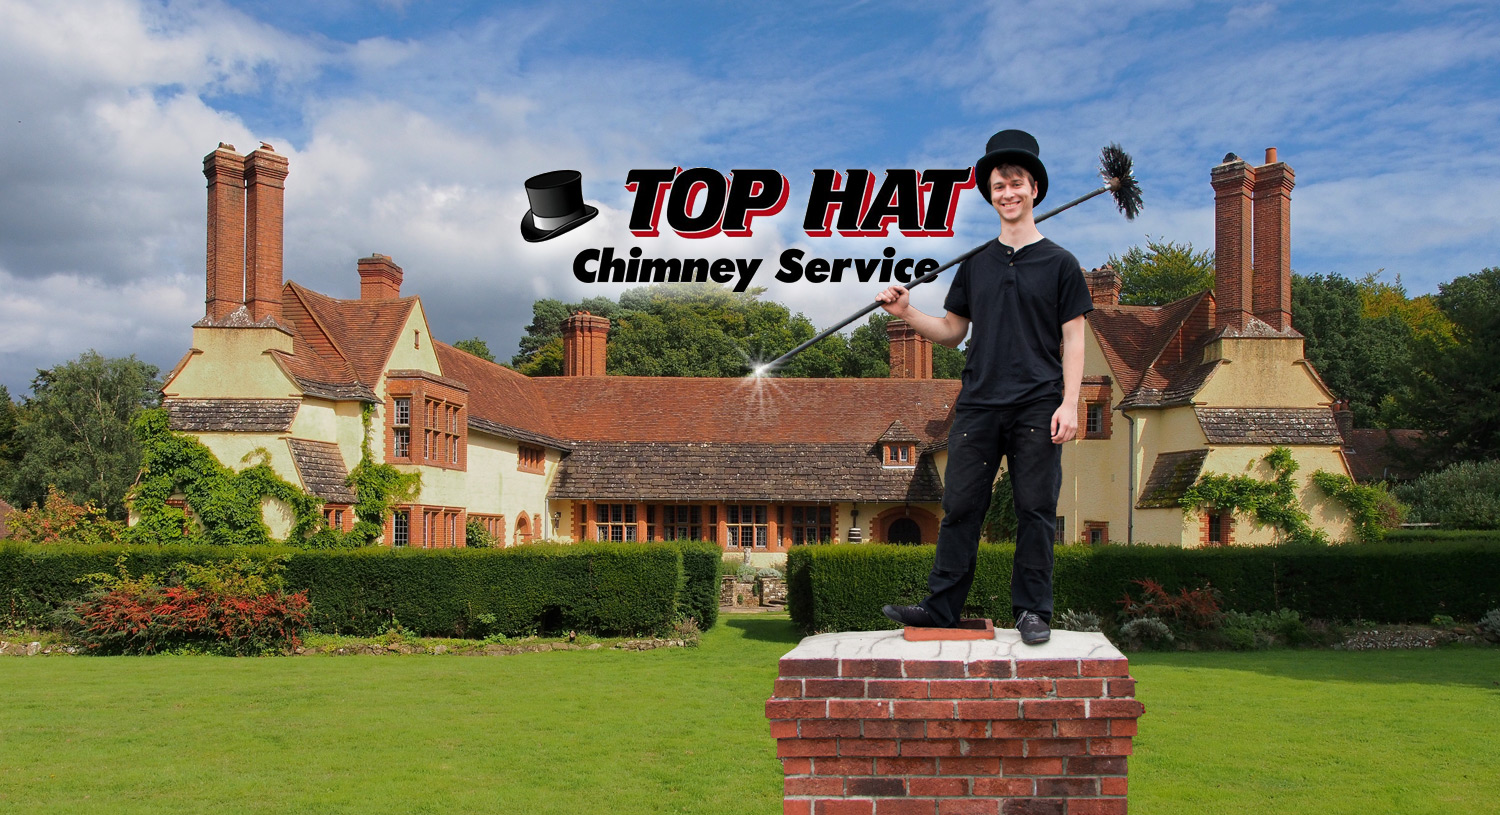 Top hat chimney service chimney inspections cleaning and repair top hat chimney service for inquiries please call 864 498 0020 teraionfo